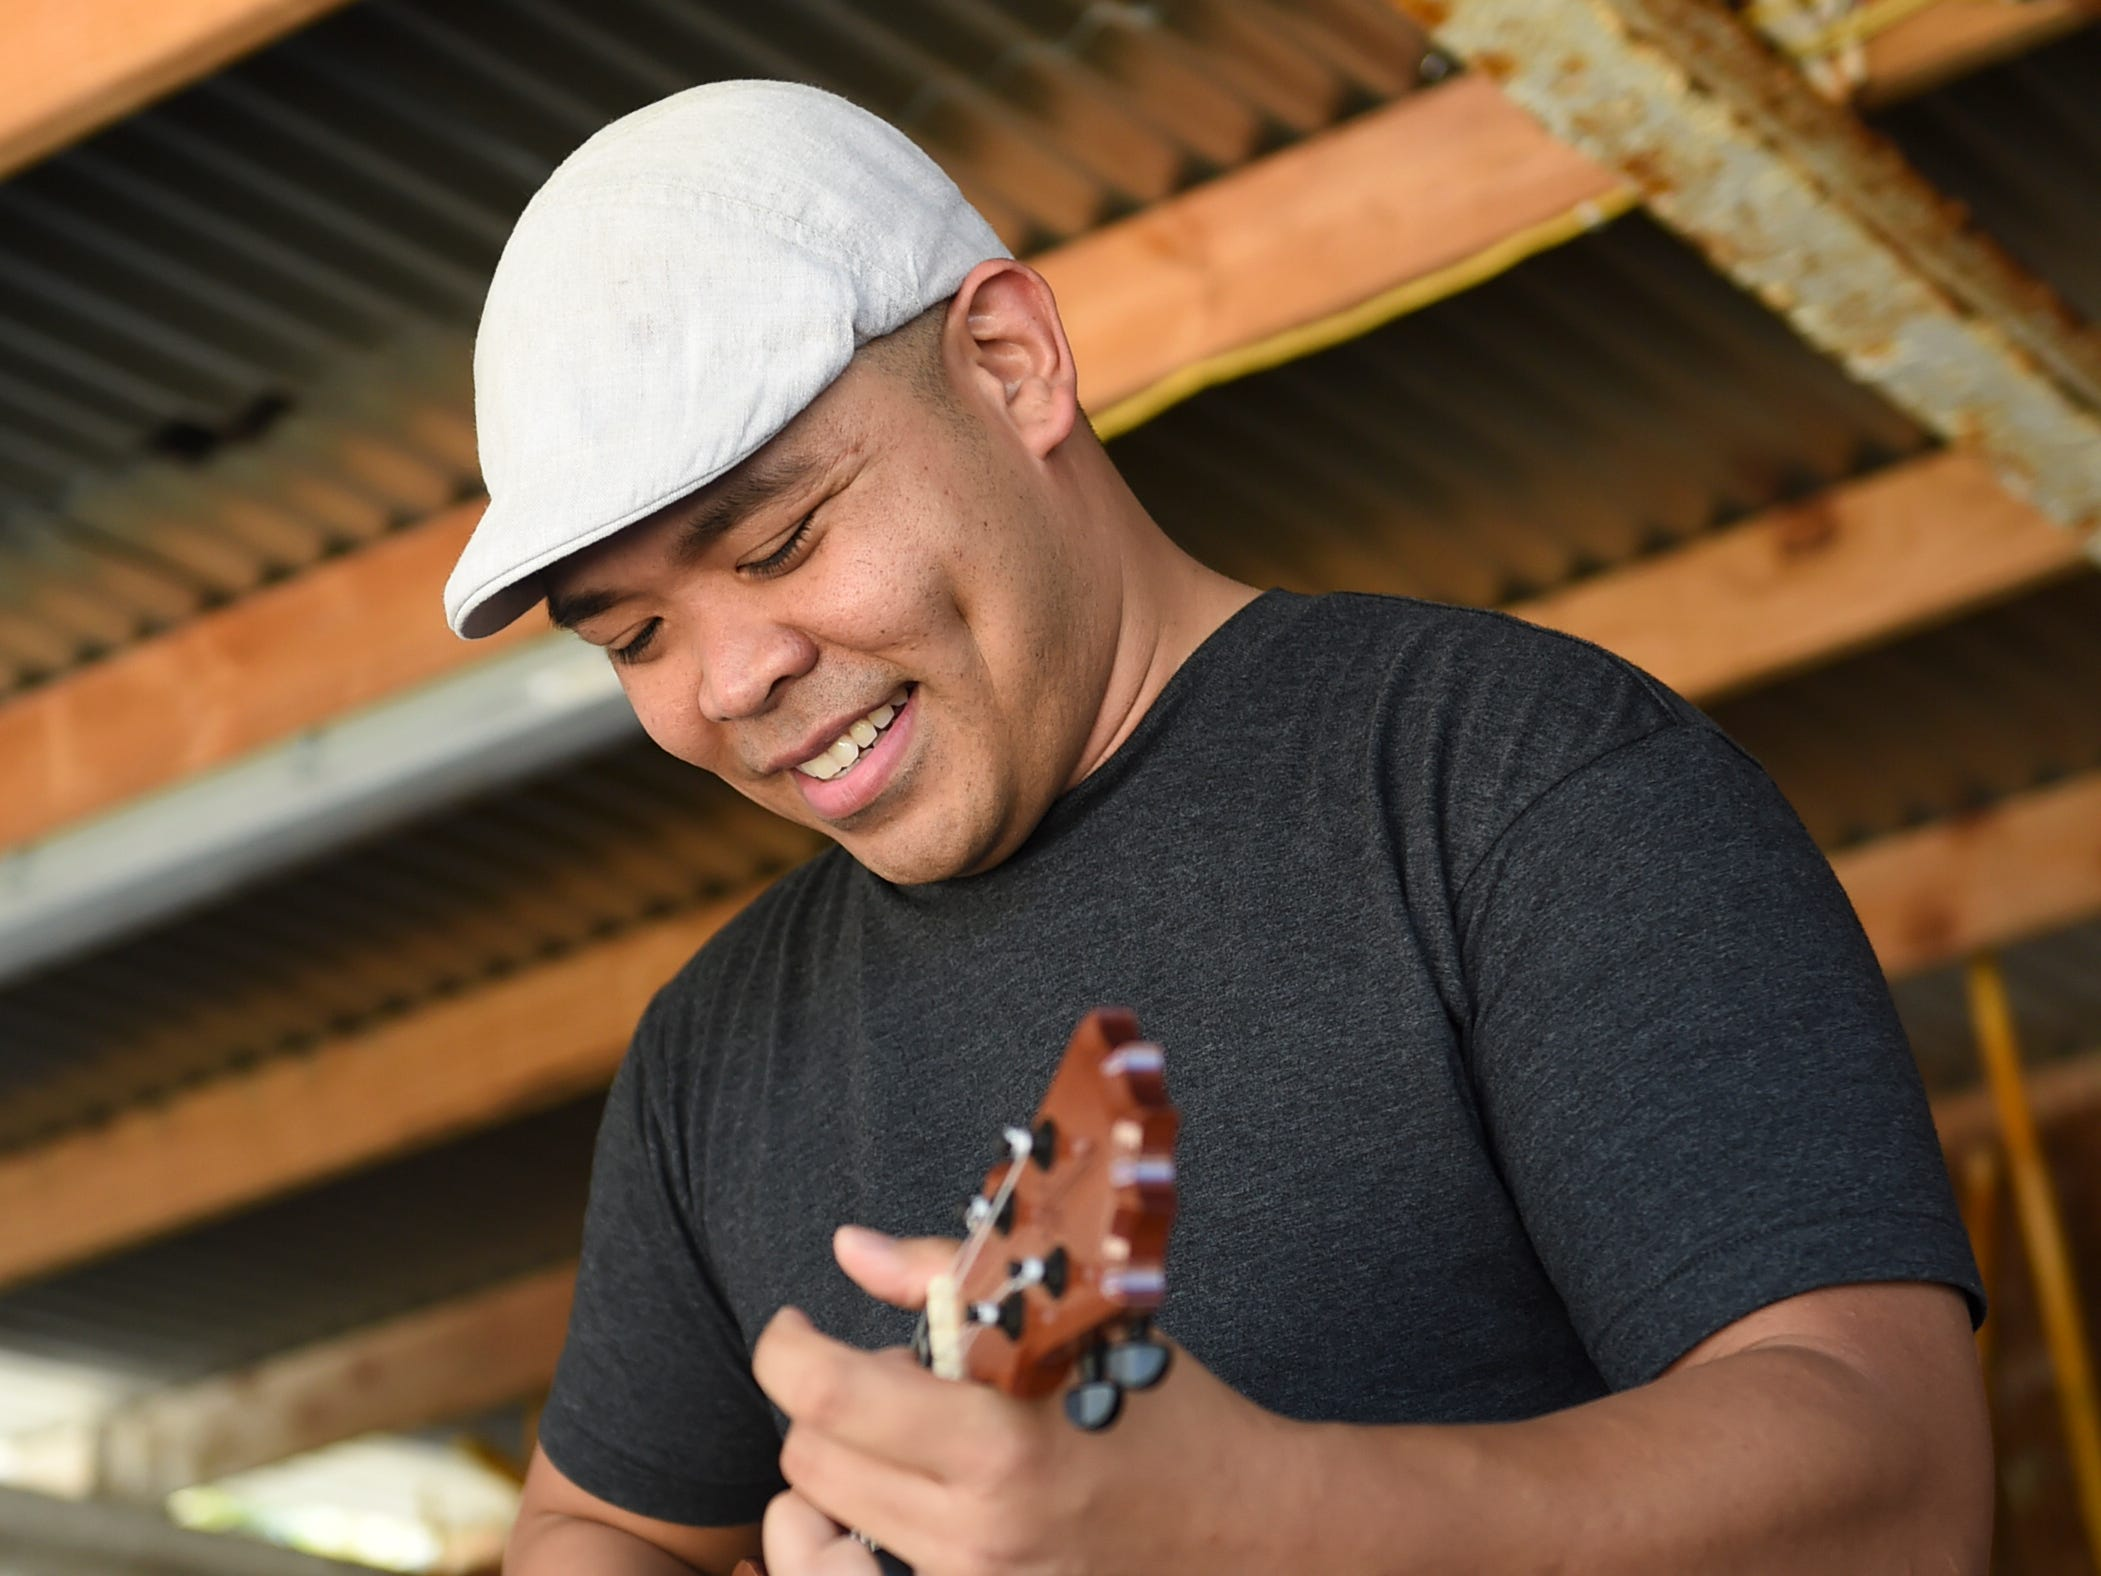 Local artist Joe Guam plays a song on the ukelele during the Guam History and Chamorro Heritage Day Festival 2019 at Umatac Bay Park, March 10, 2019.